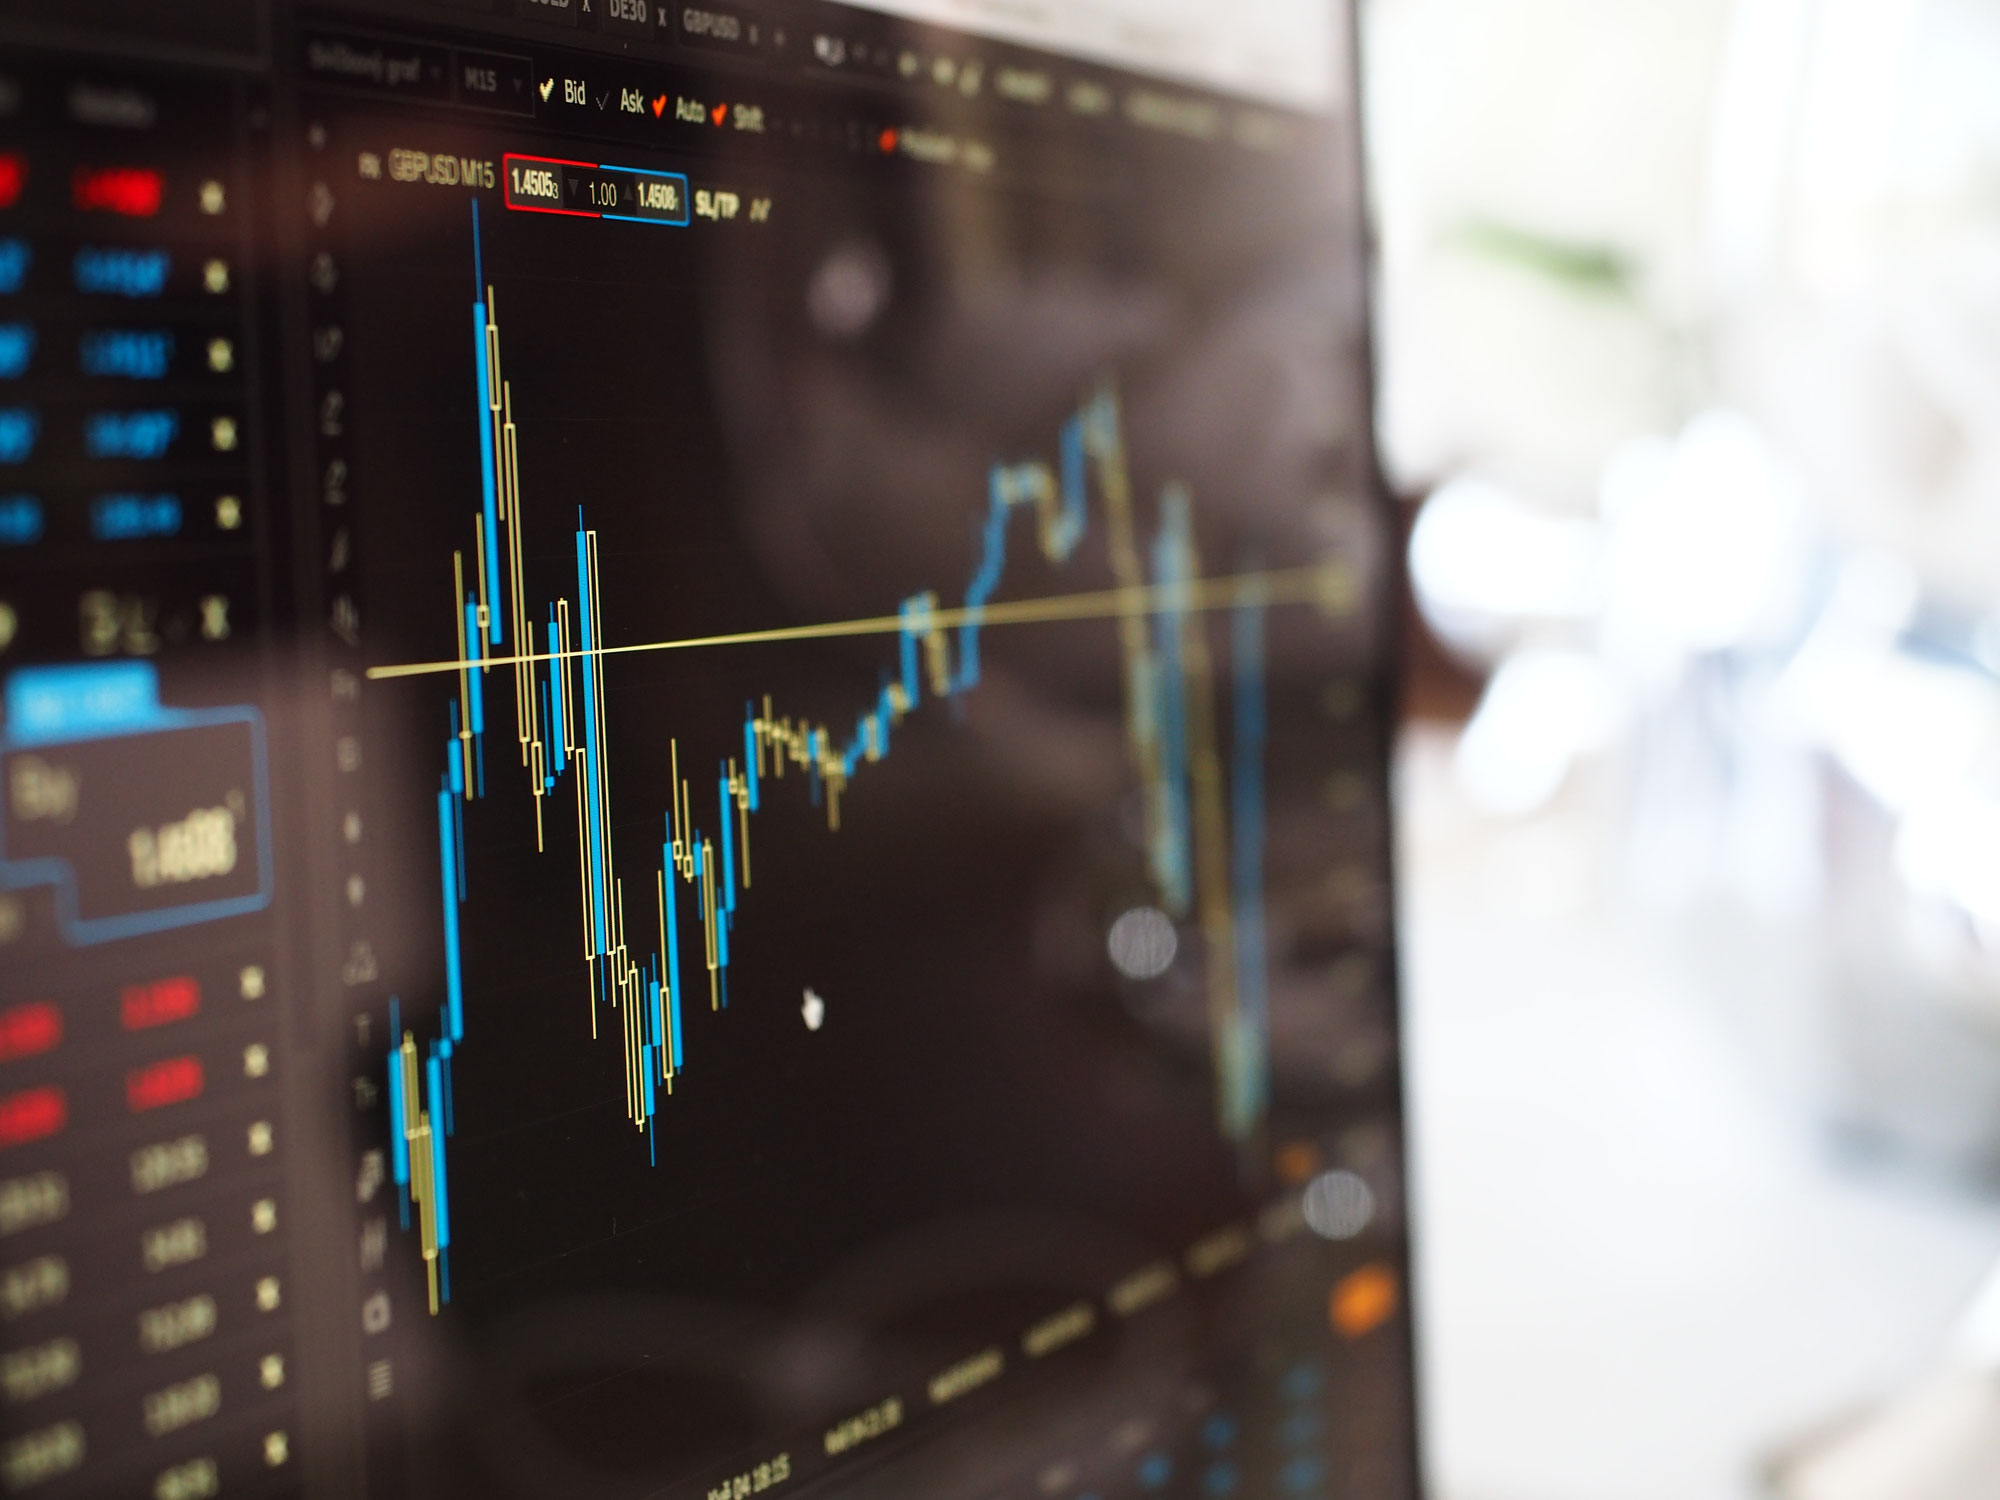 Treasurers' interest in AI-based hedging persists